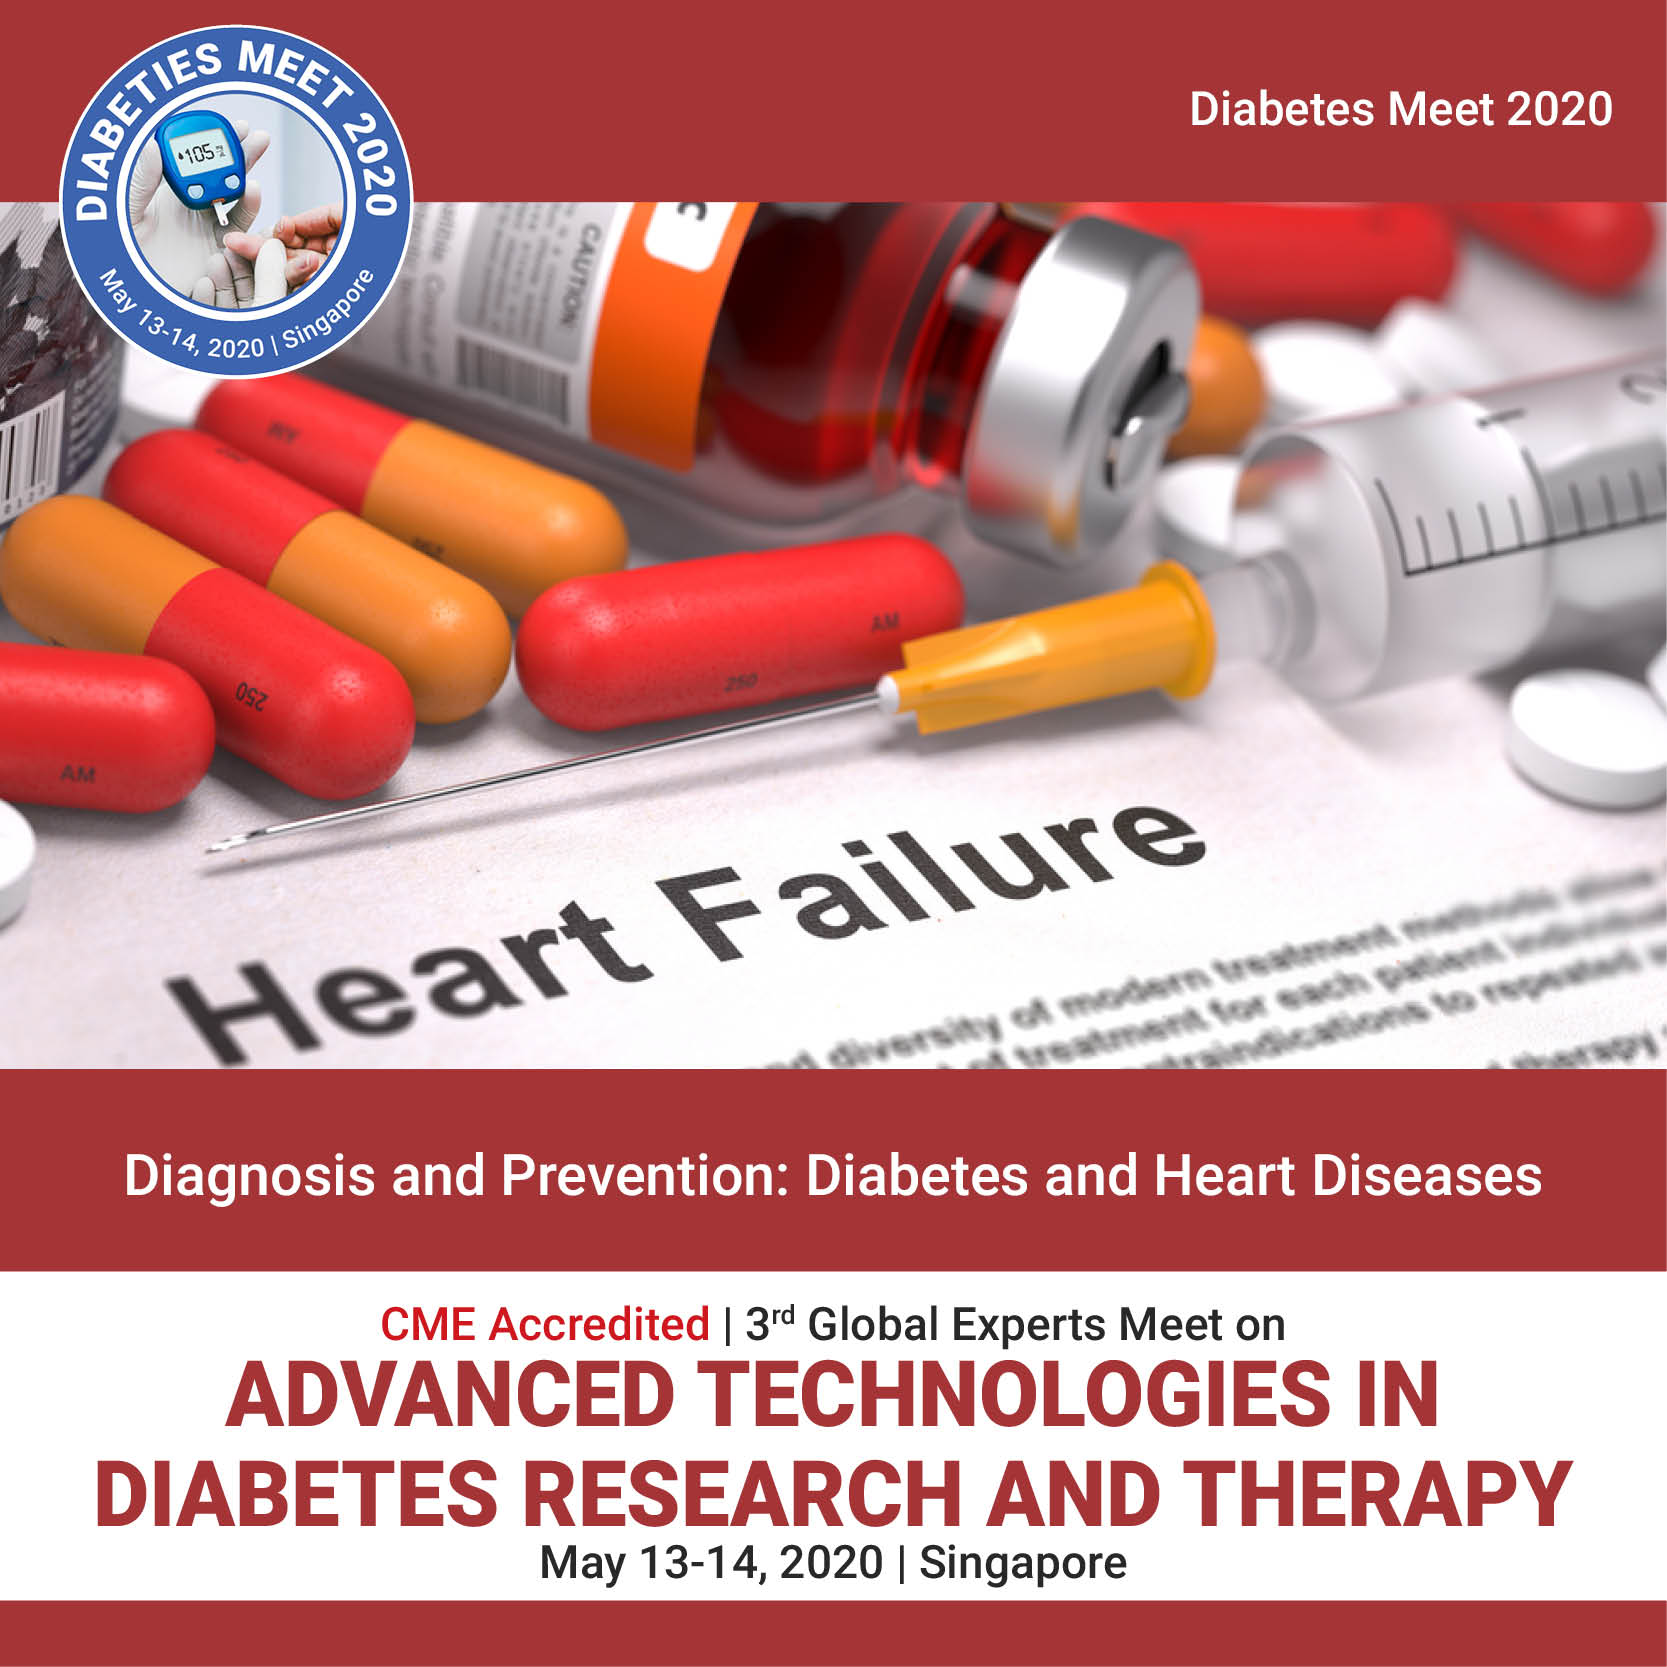 Diagnosis and Prevention: Diabetes and Heart Diseases Photo